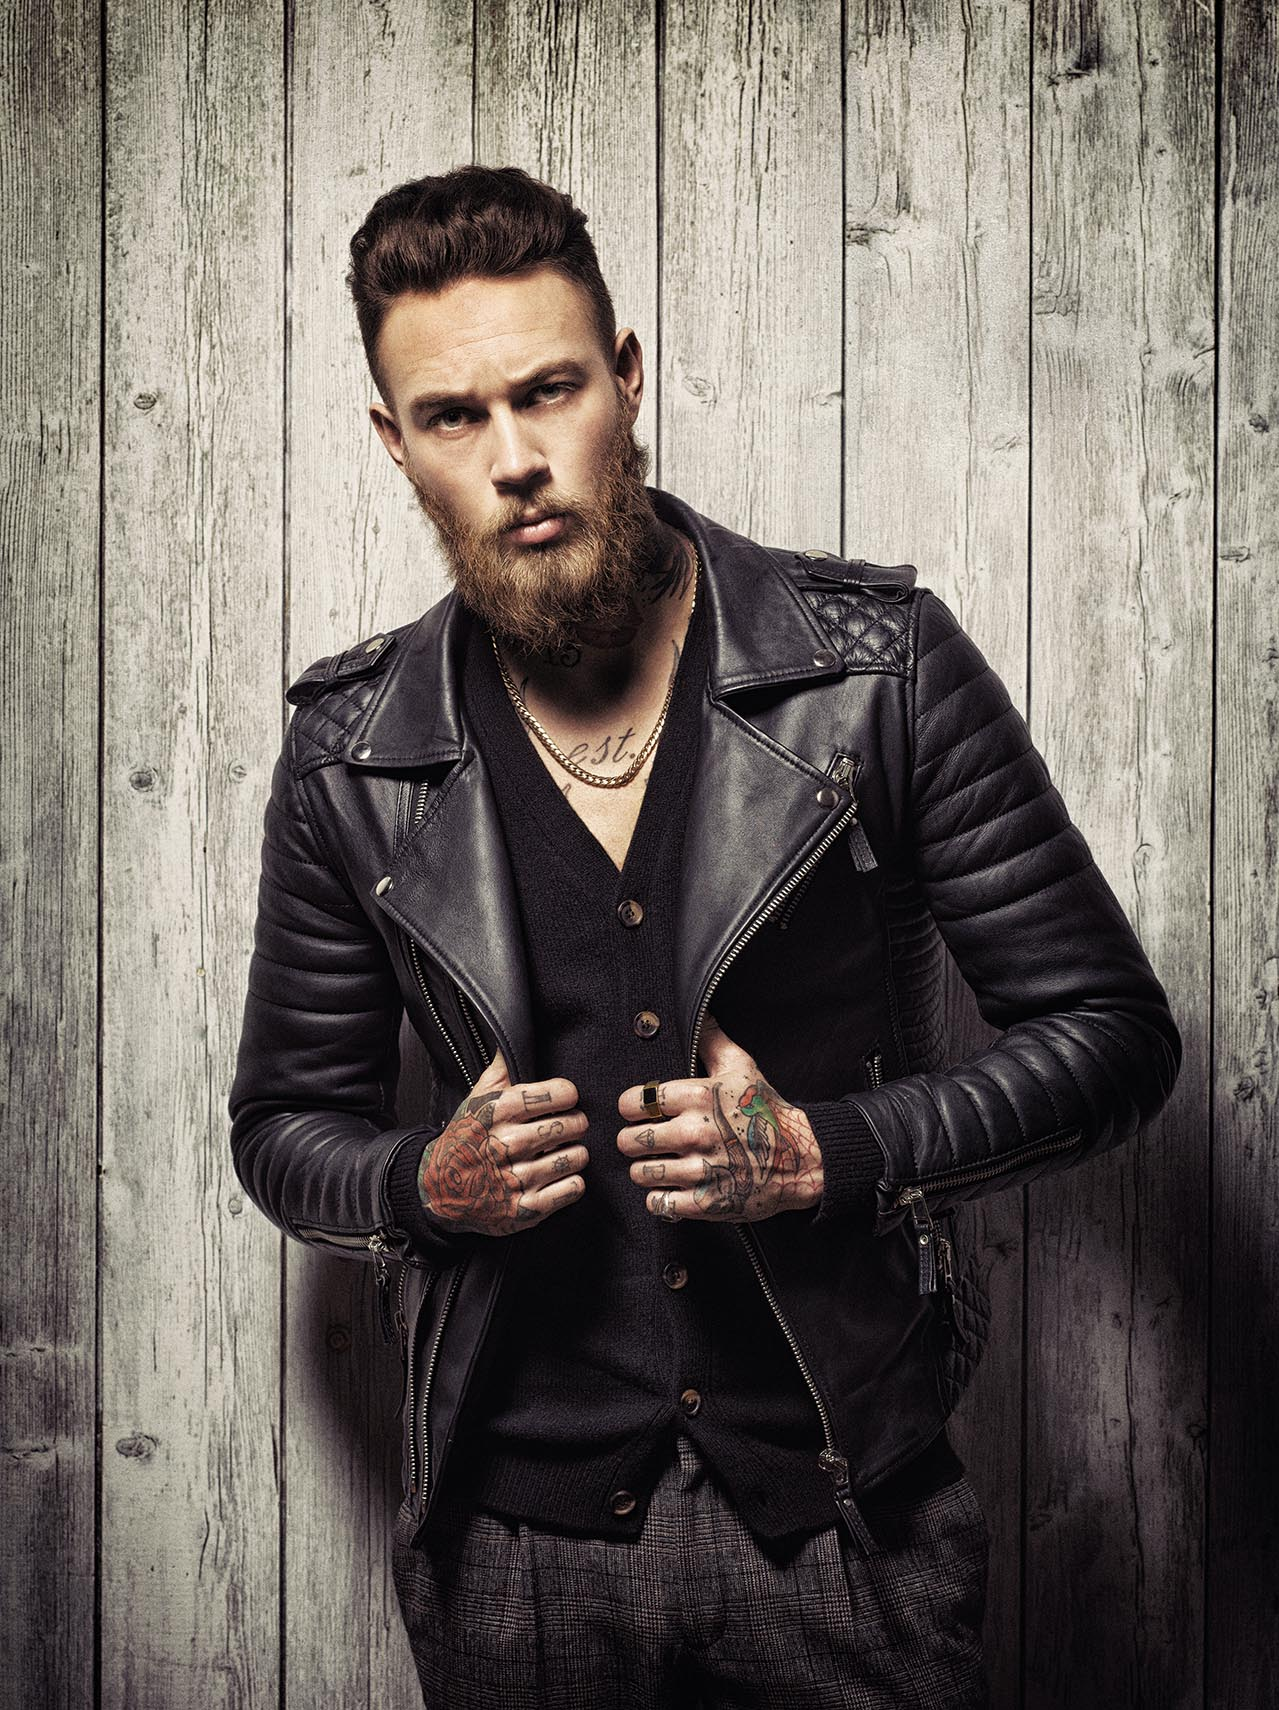 Joe Giacomet - Young man in leather jacket